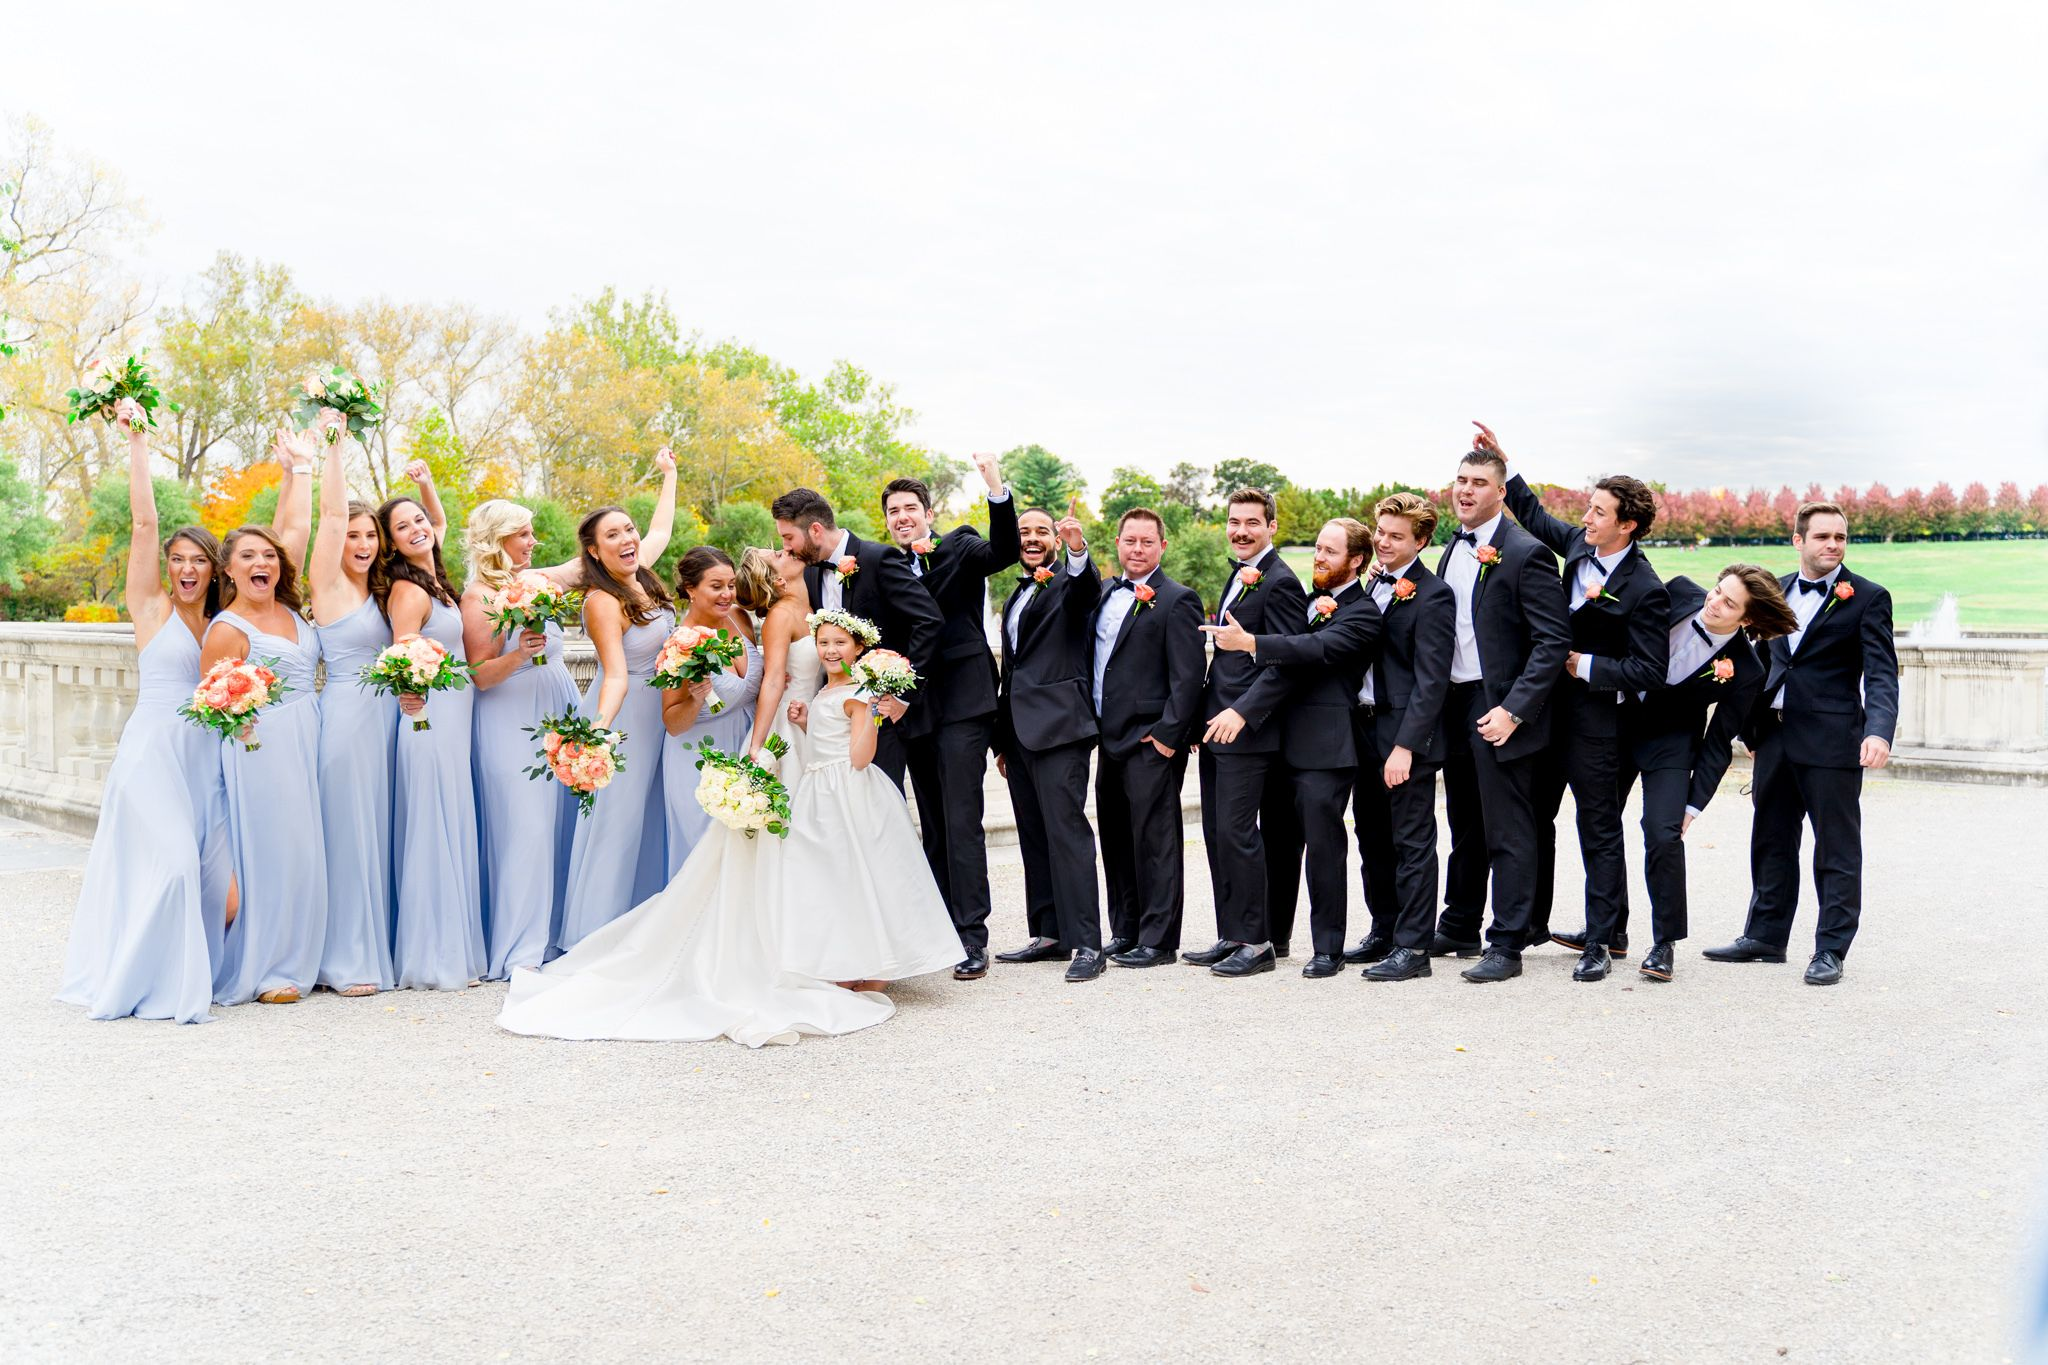 large wedding party in black suits and light blue dresses surround bride and groom at Forest Park in St. Louis